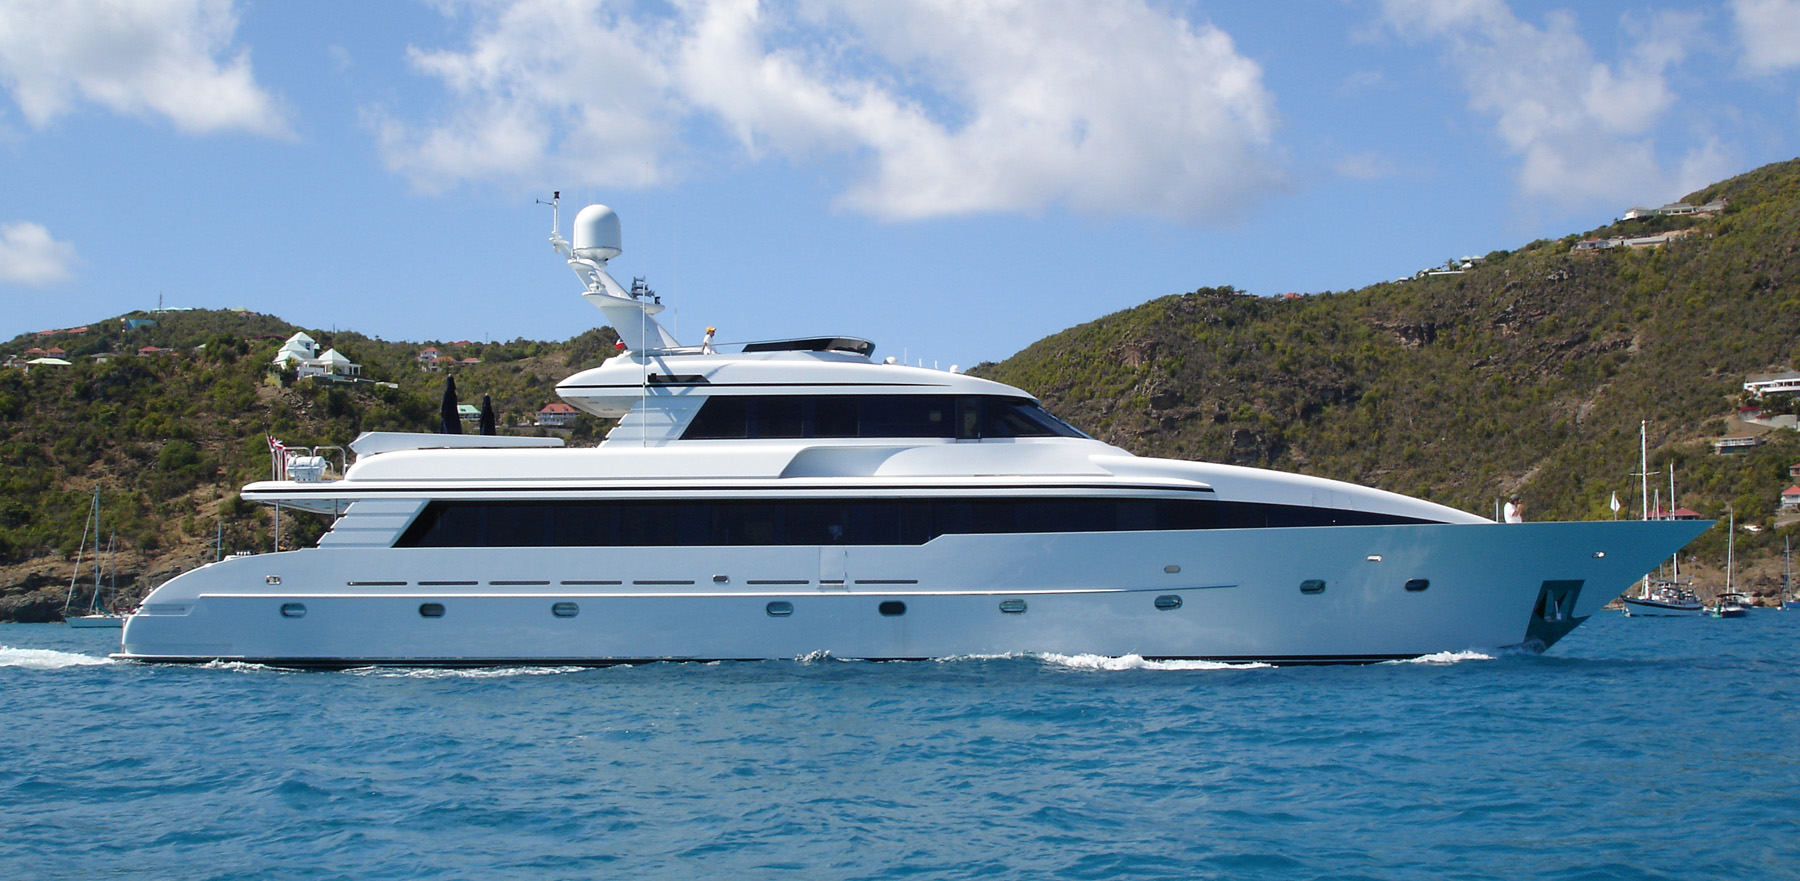 Sea Dreams specs with detailed specification and builder summary